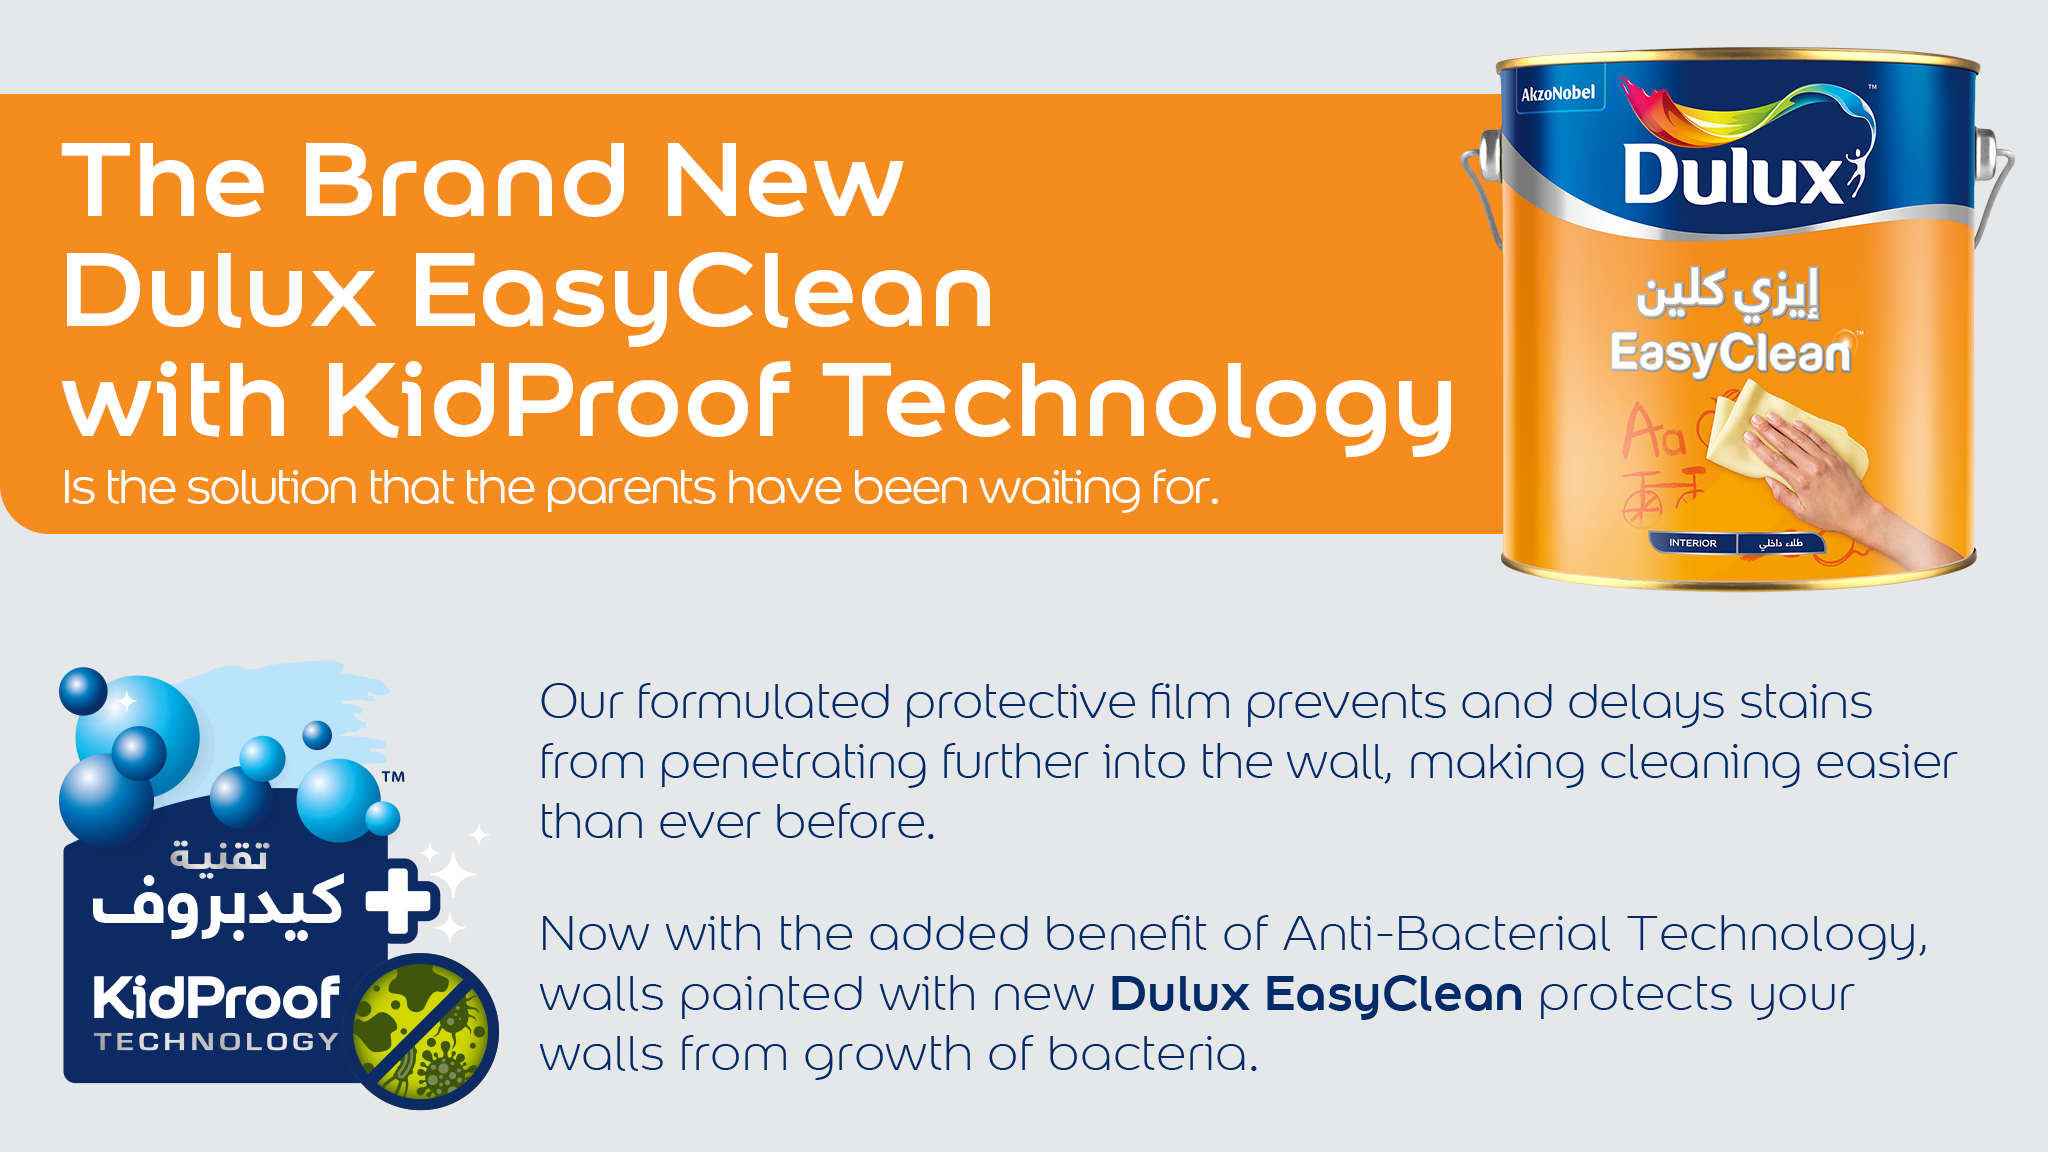 Dulux EasyClean with Kidproof technology